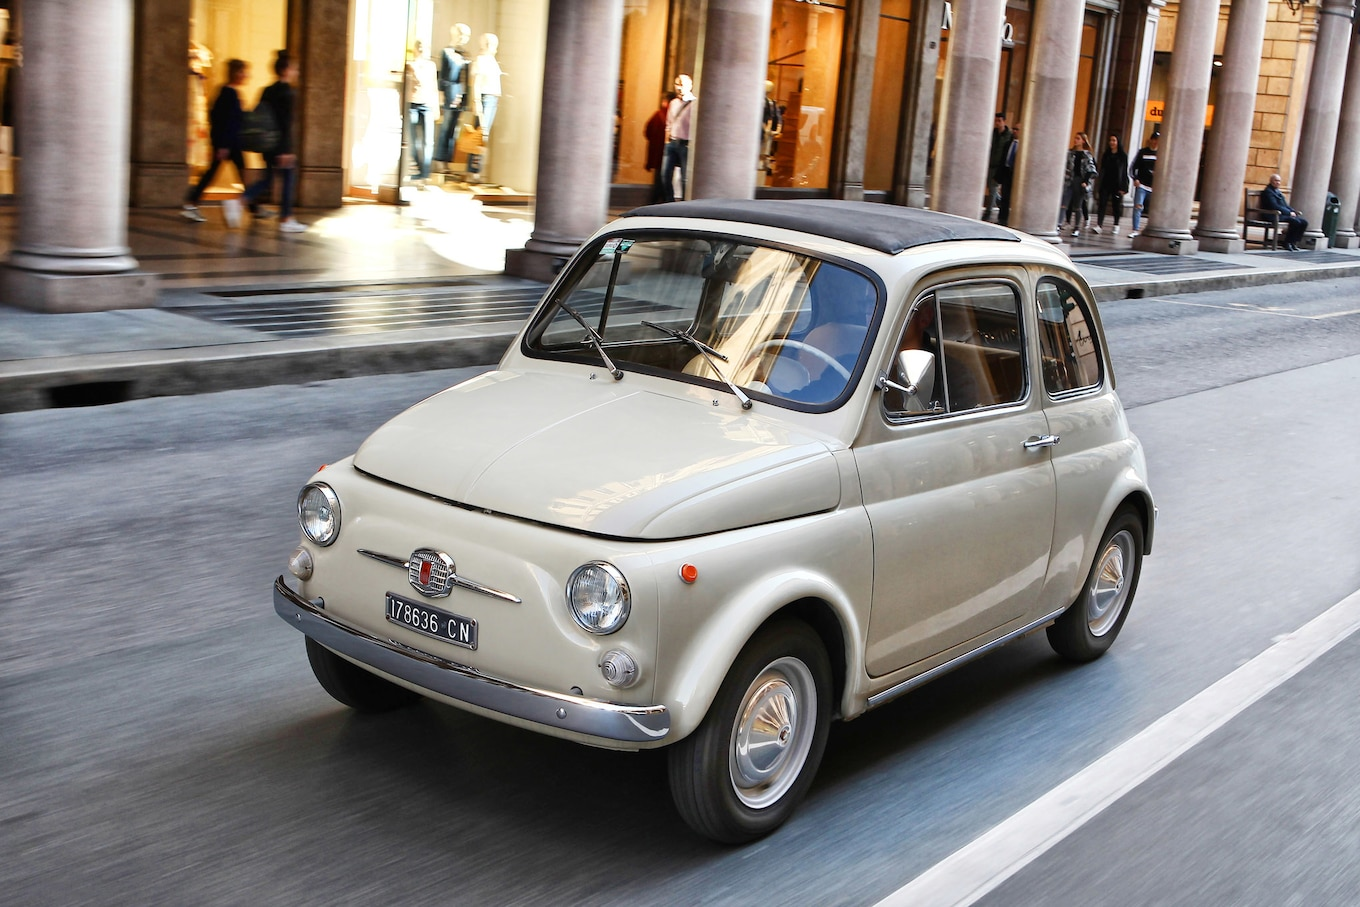 https://bestessayresearch.com/wp-content/uploads/2018/08/Fiat-500F-MoMA-Streets.jpg